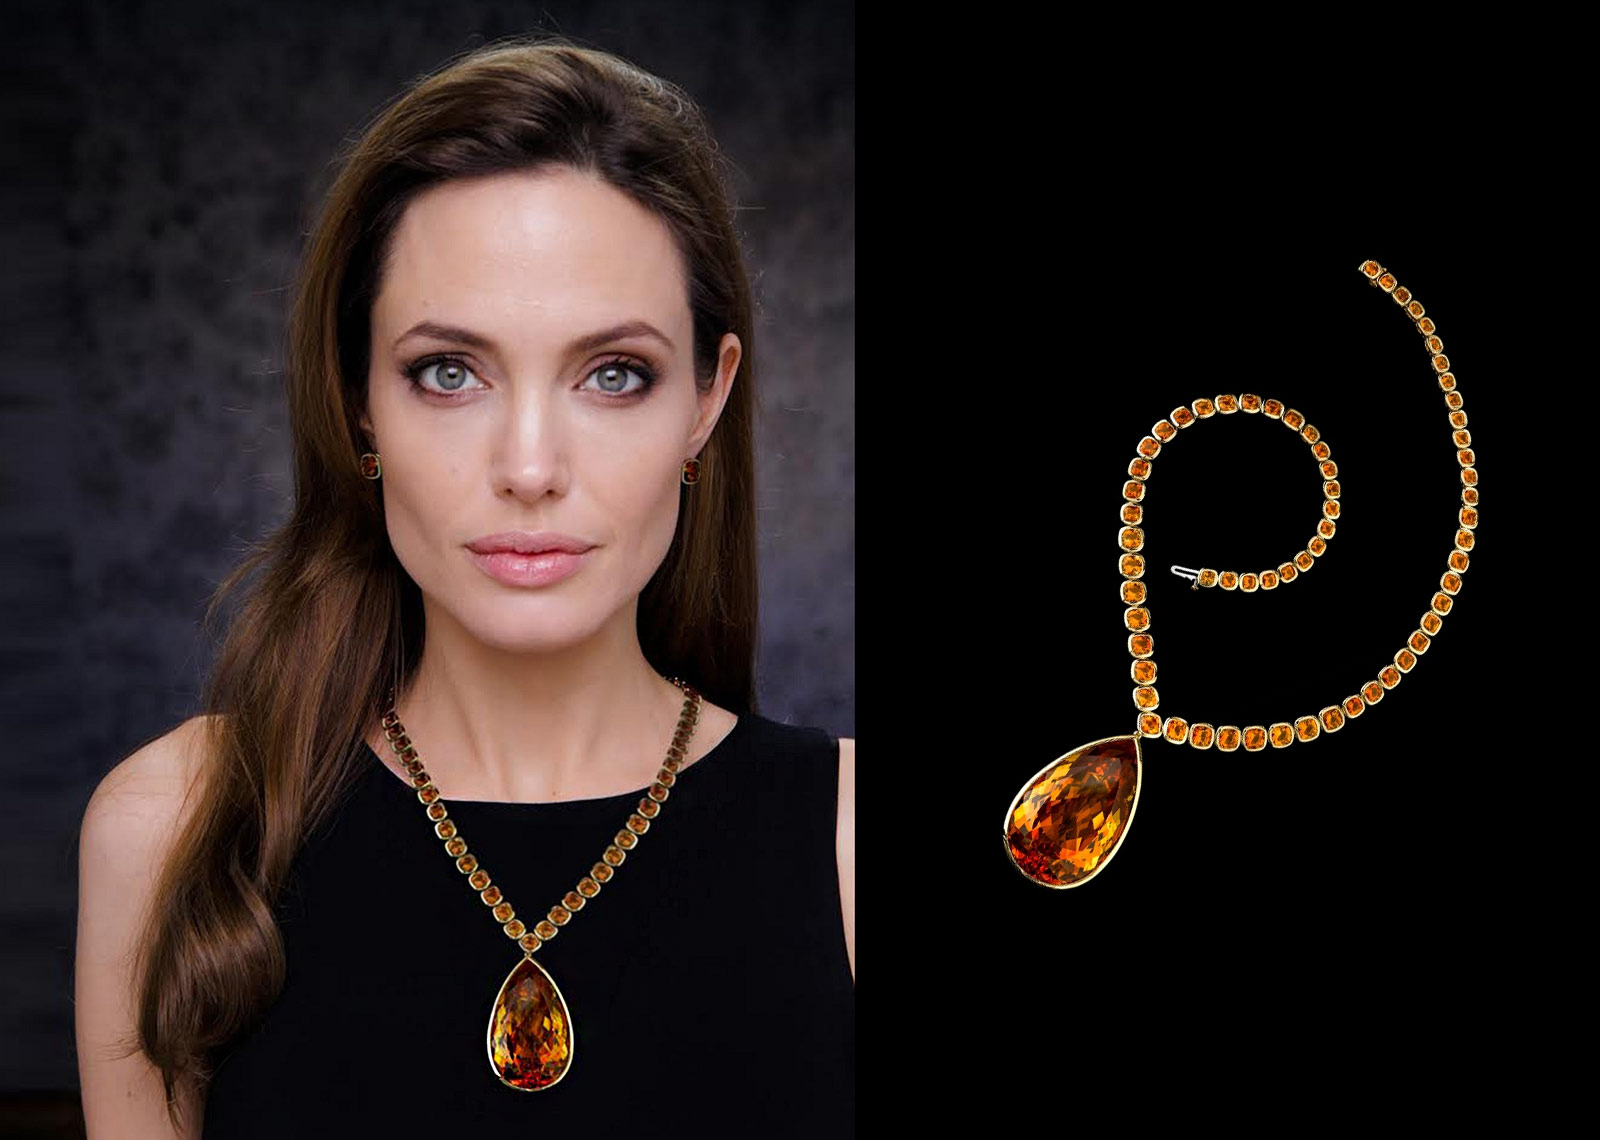 Robert Procop and Angelina Jolie collaboration necklace with 64 cushion cut citrines and a 177.11ct pear shaped citrine in yellow gold